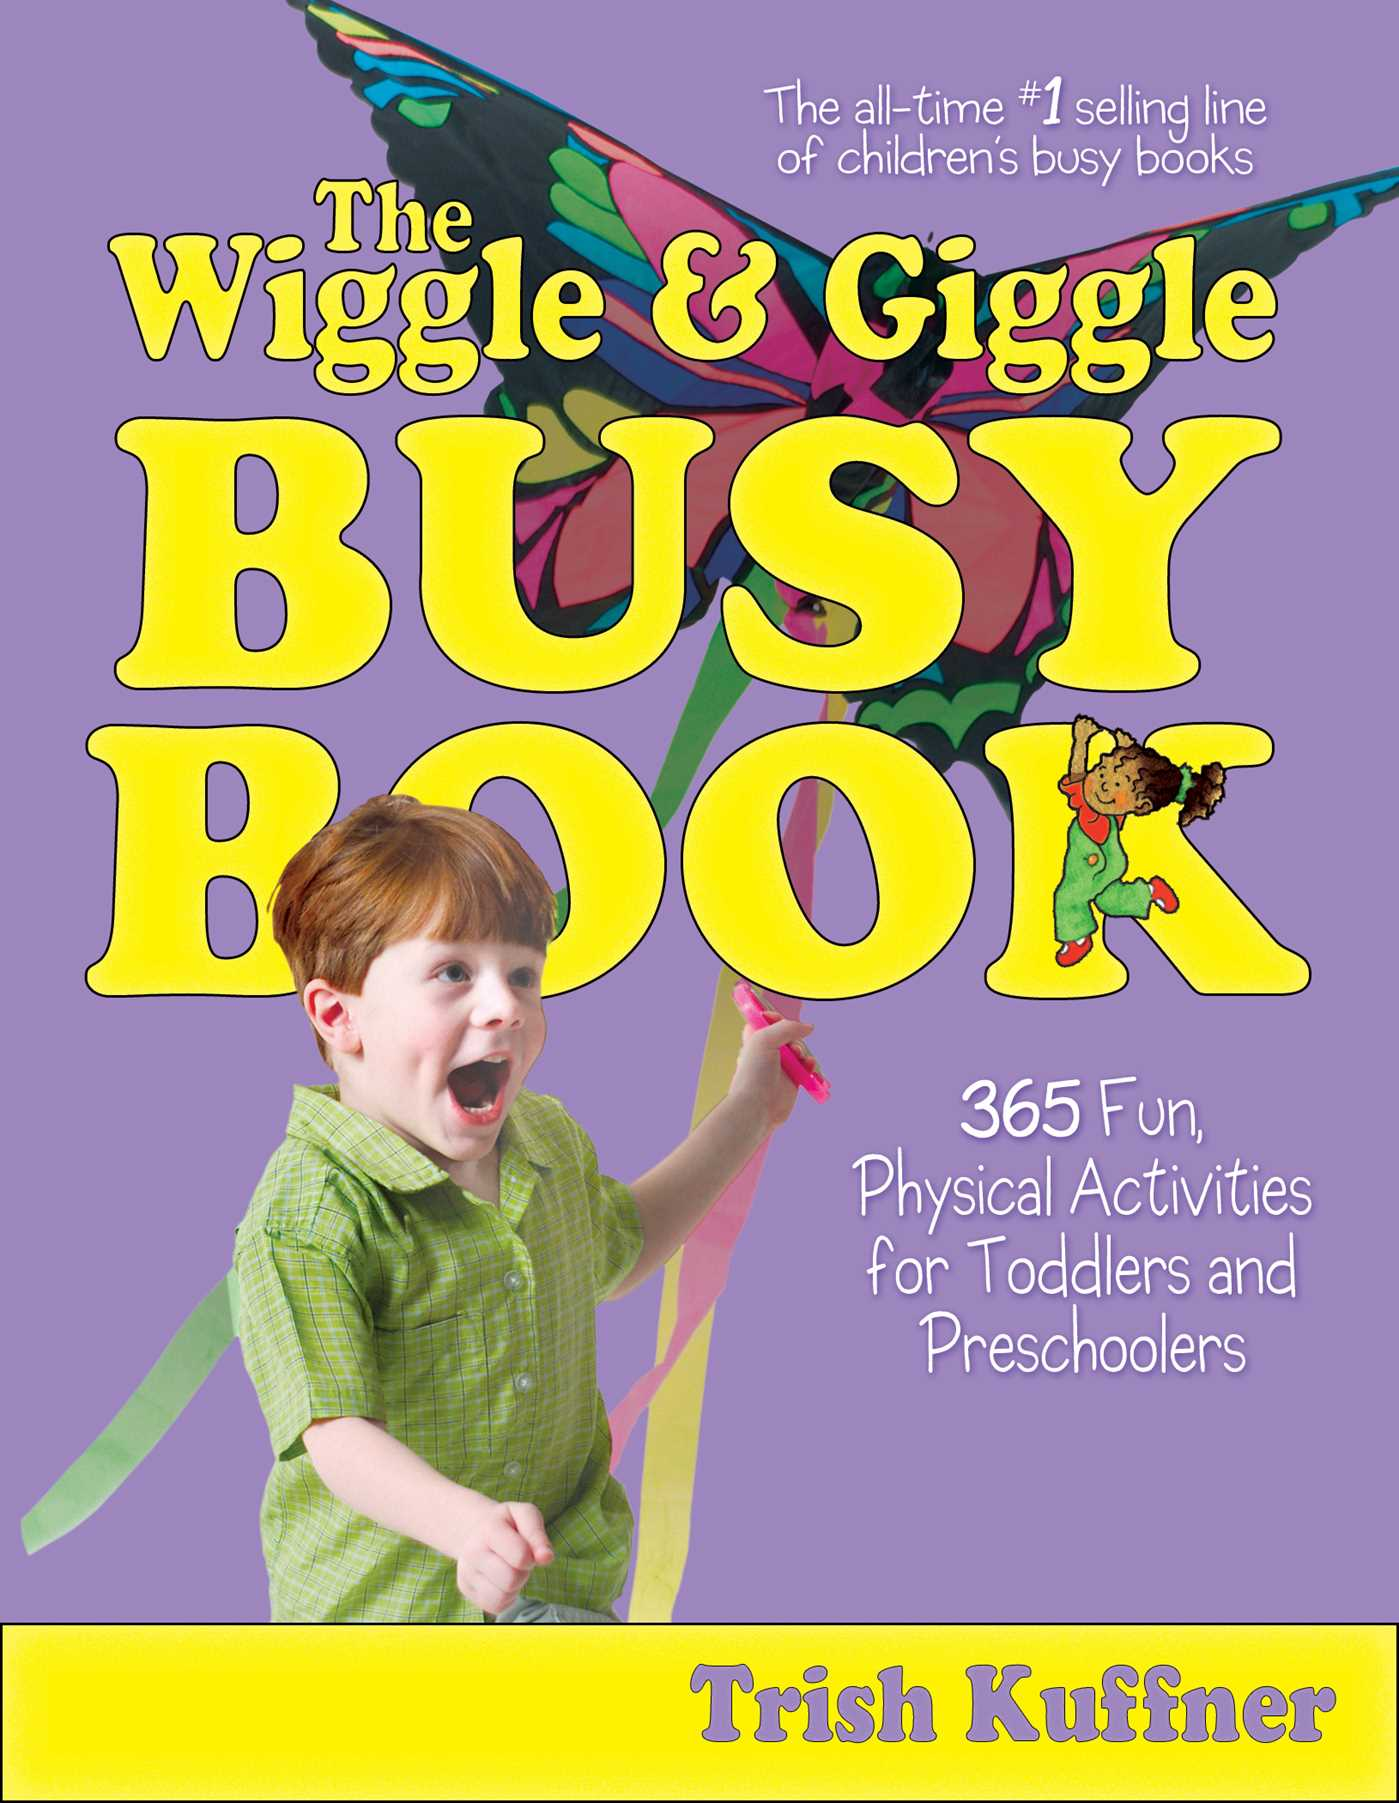 The-wiggle-giggle-busy-book-9781442411227_hr